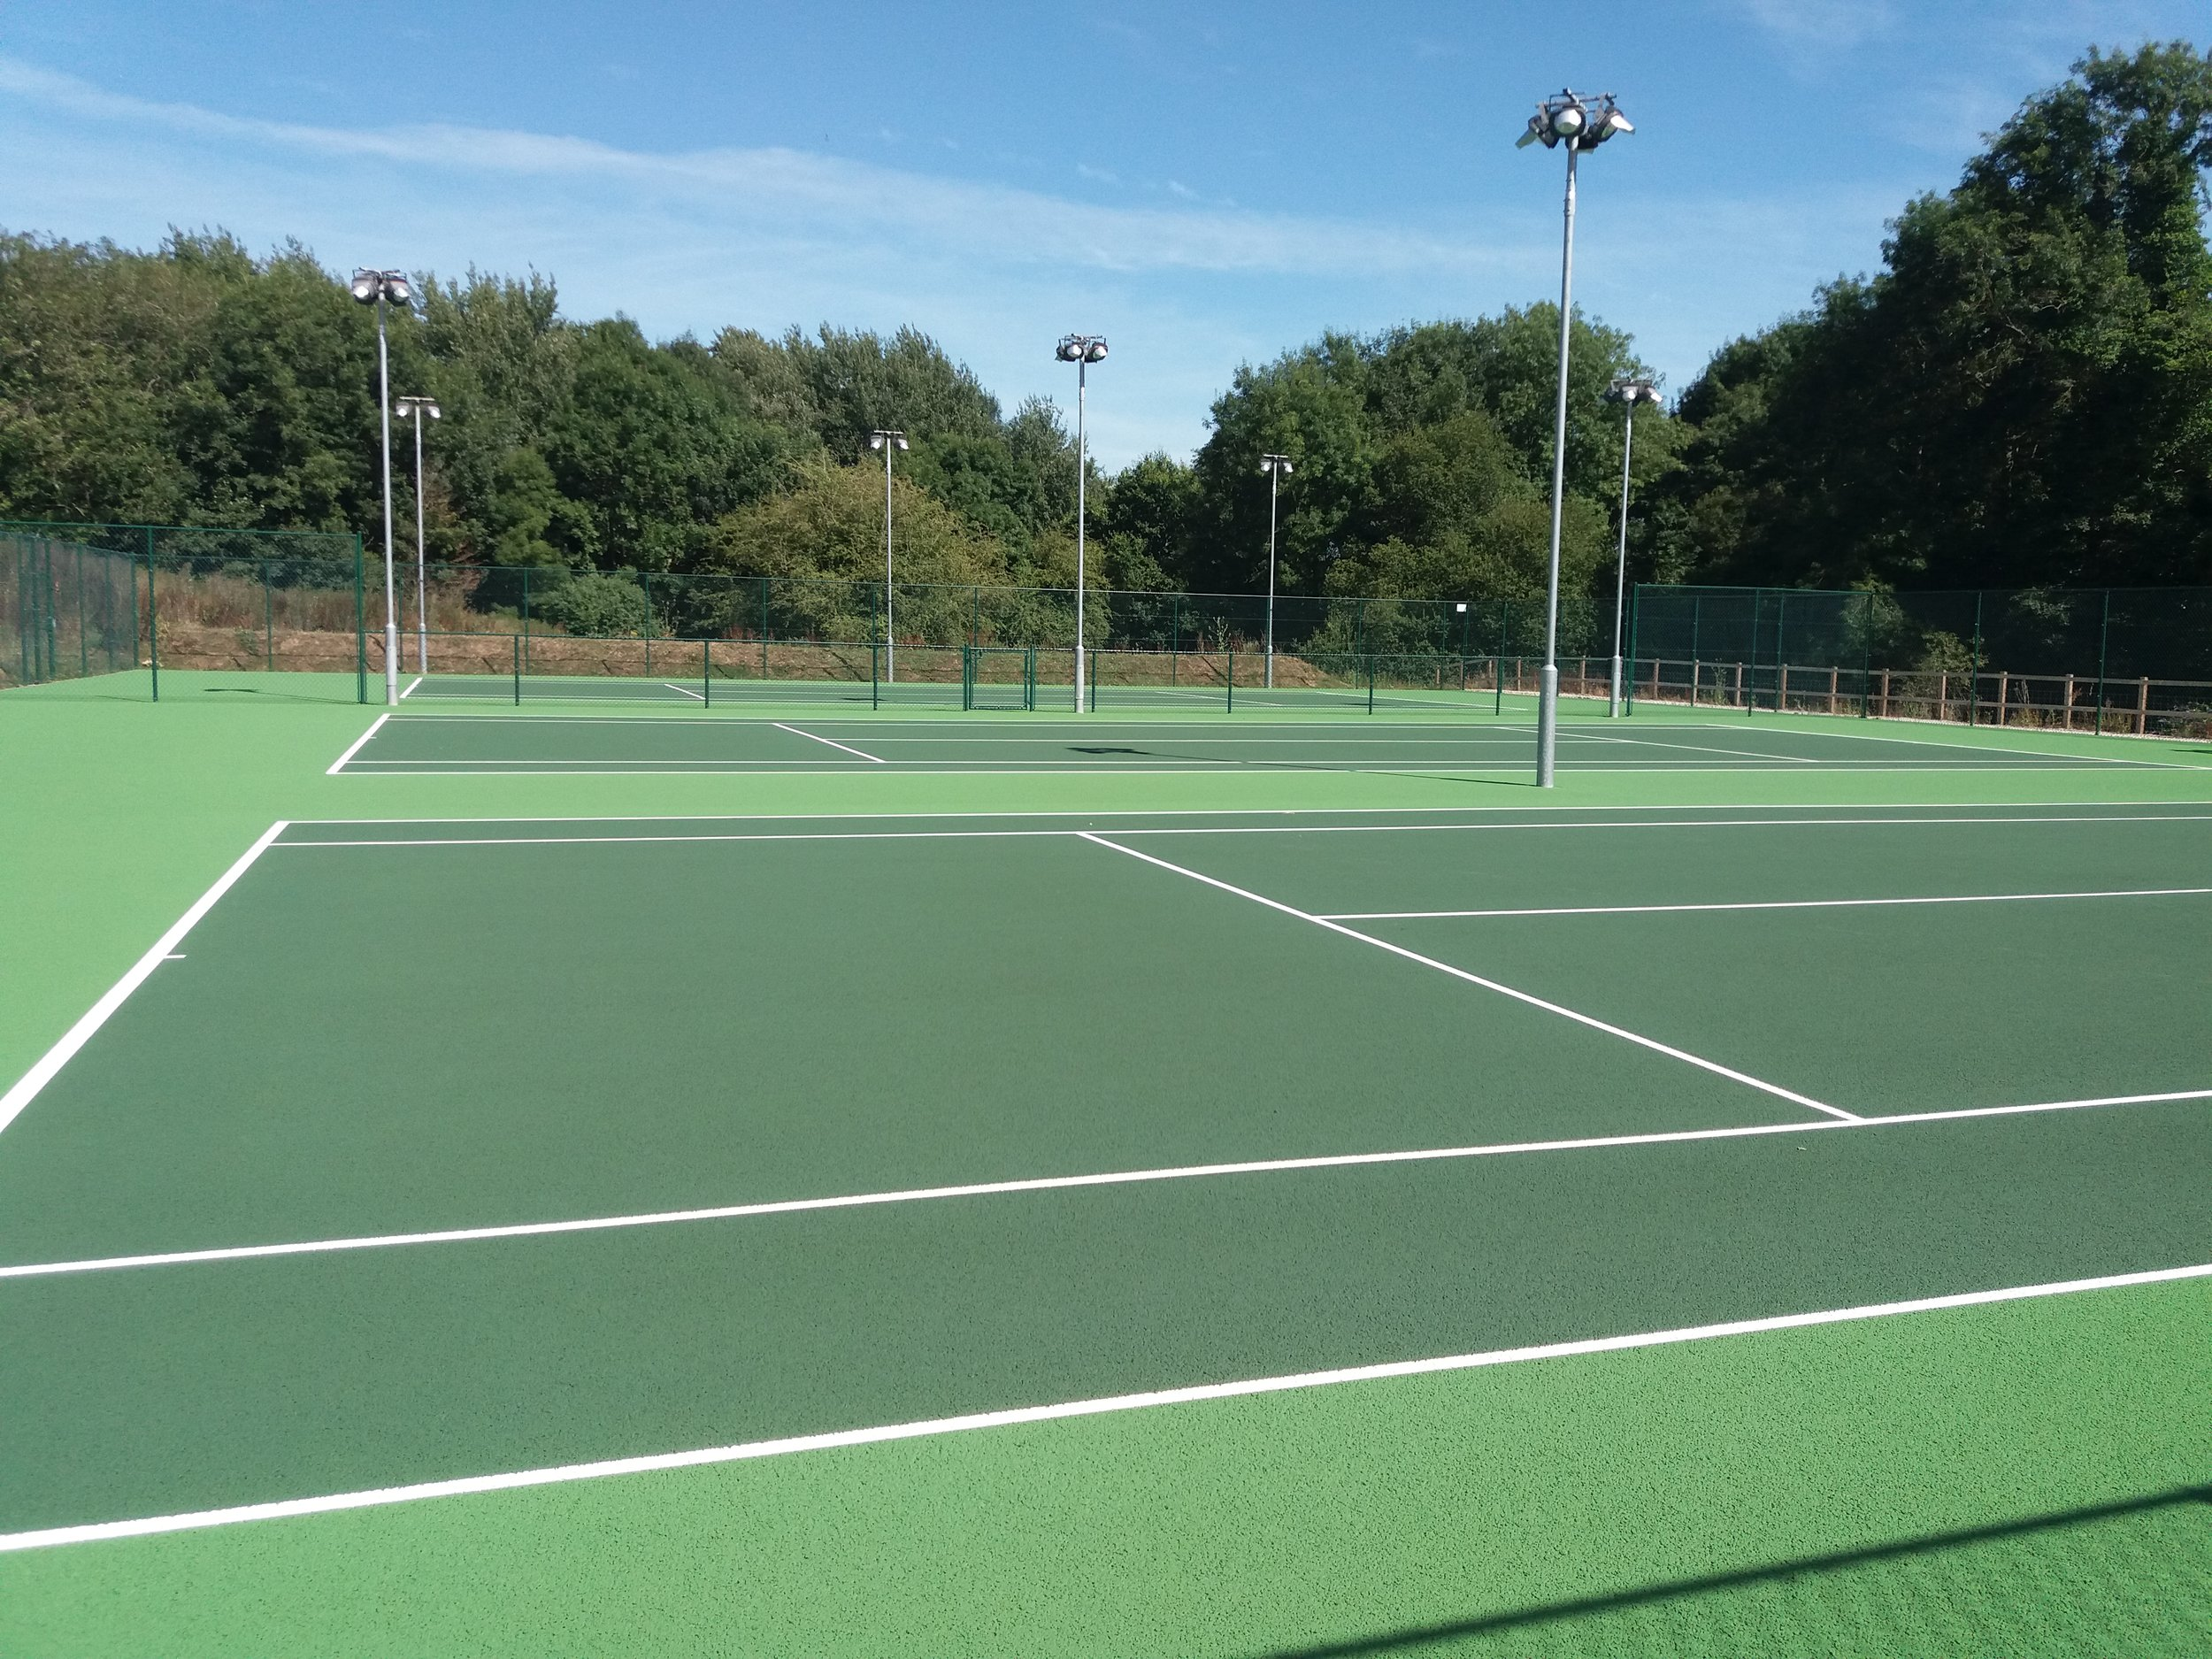 outdoor courts repainted 240719.jpg